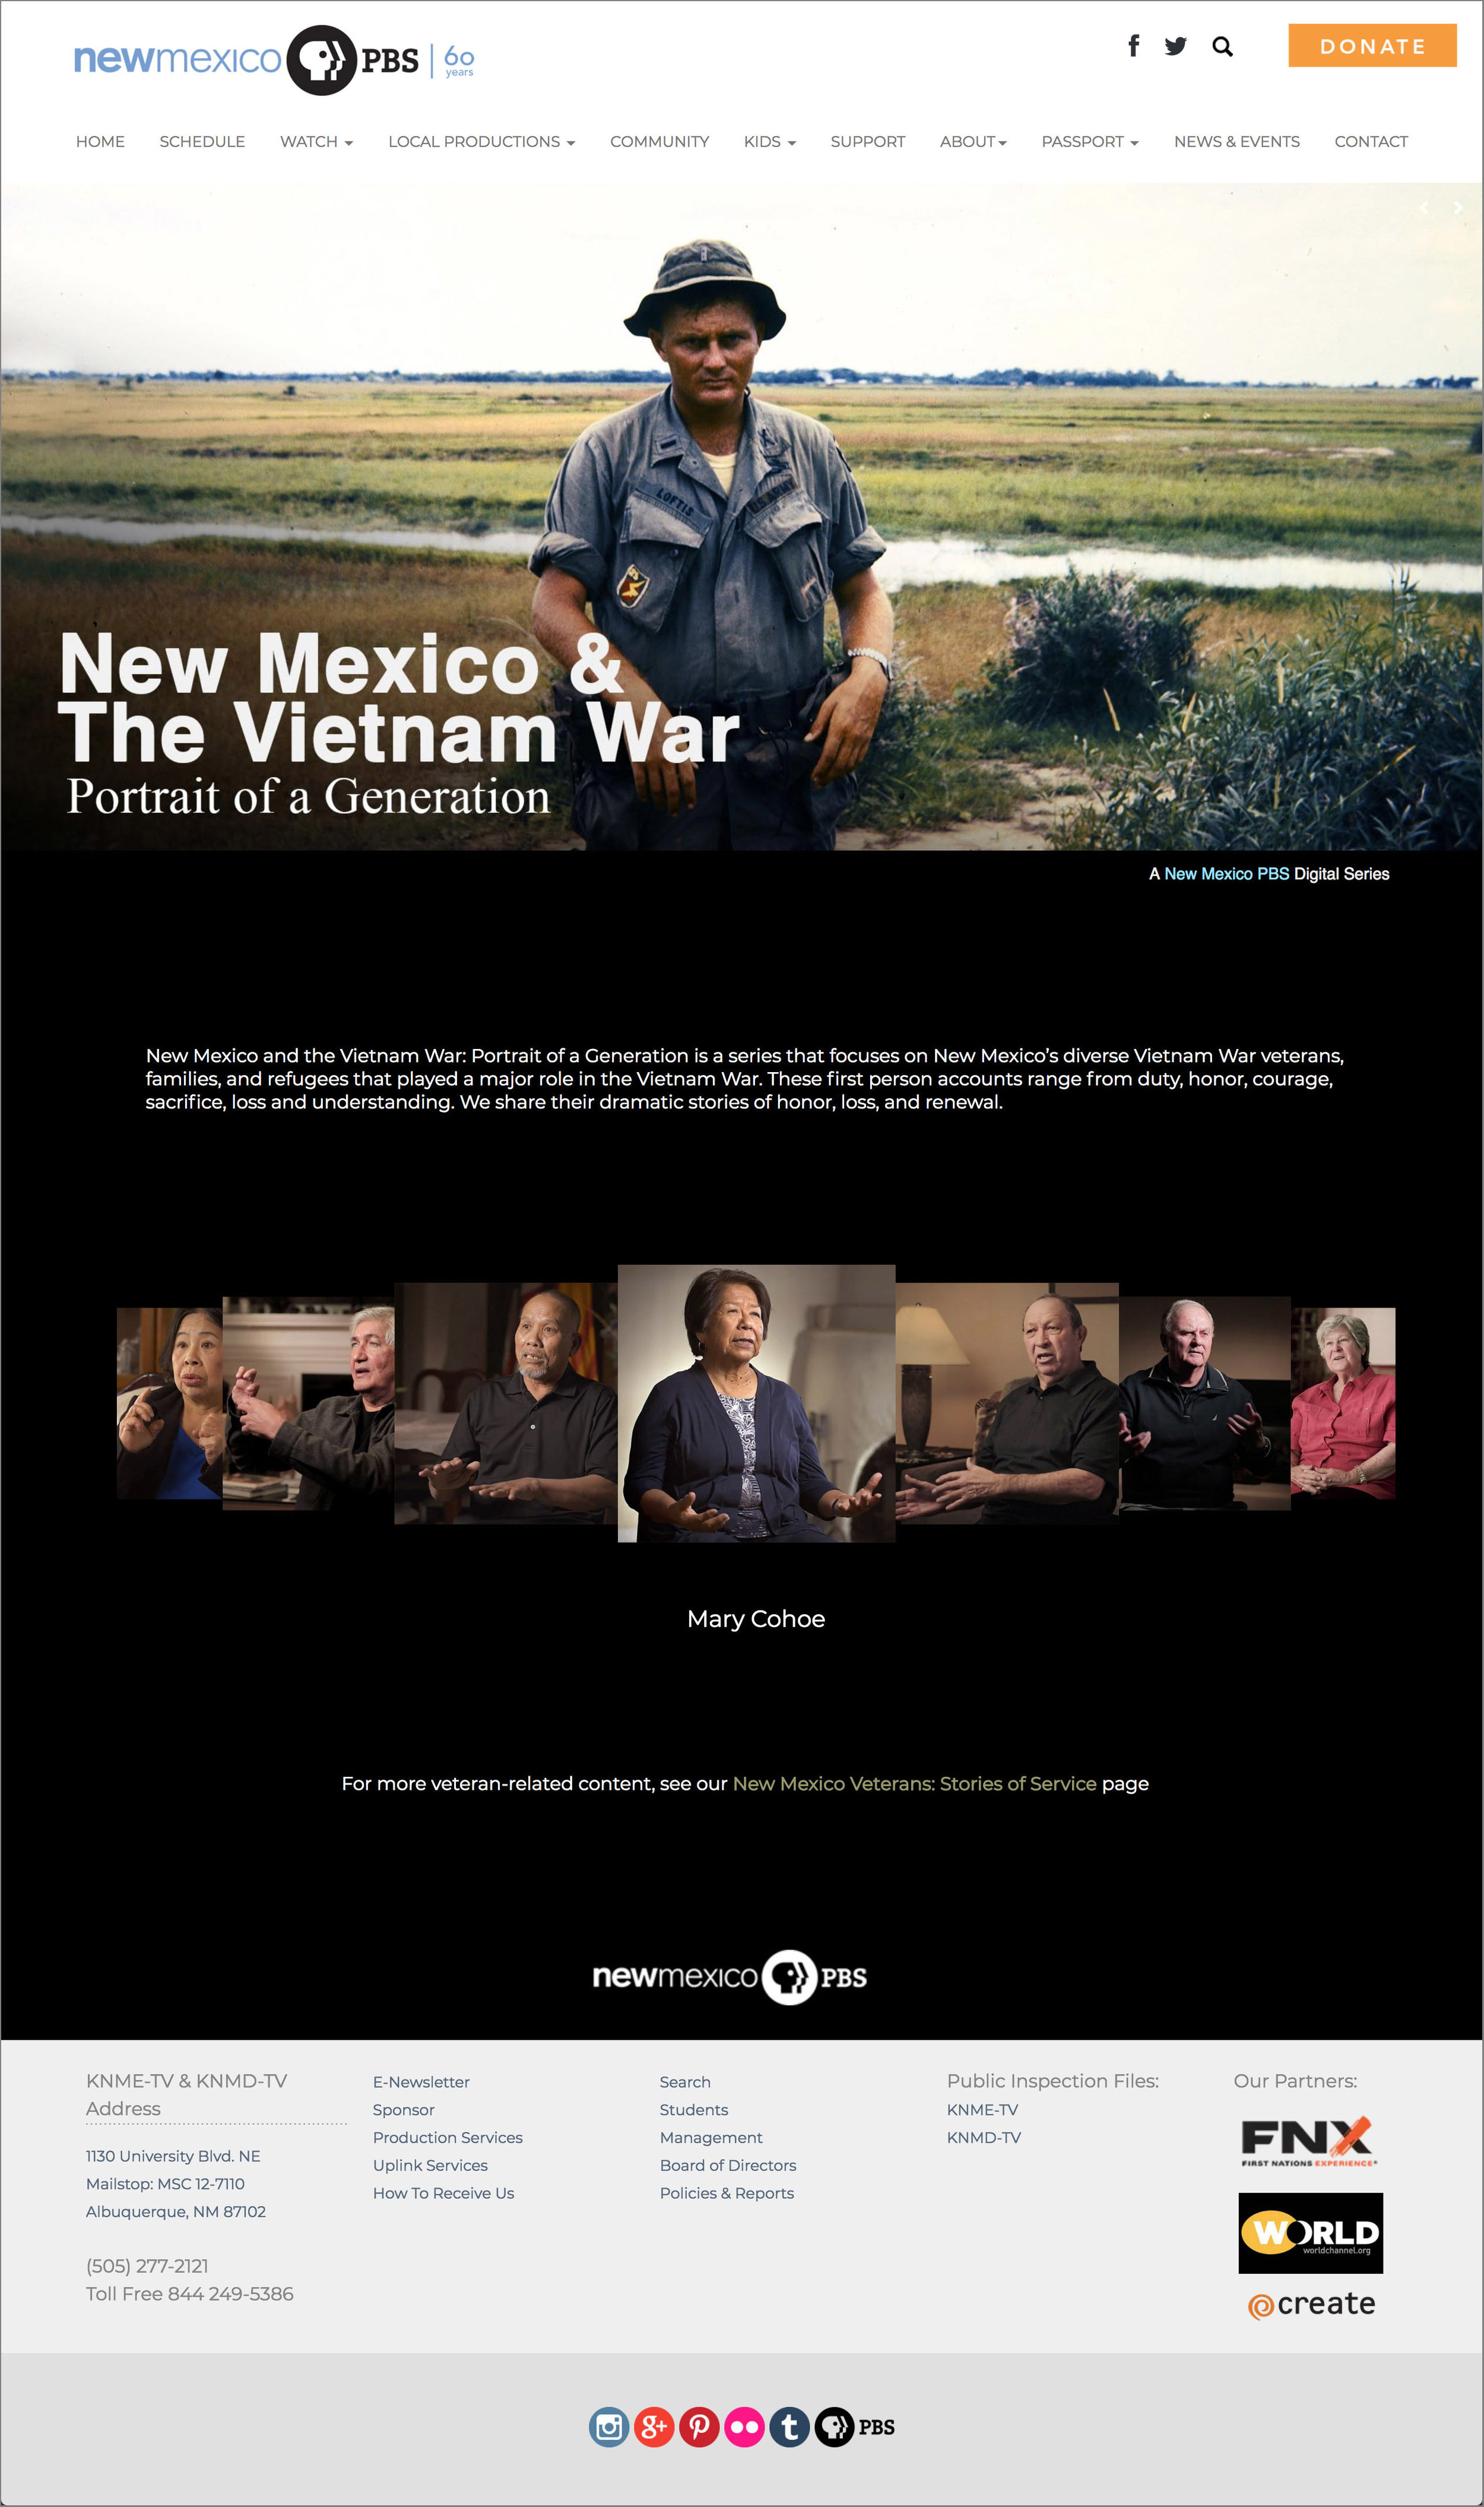 New Mexico & The Vietnam War: Portrait of a Generation    Tools used:    WordPress Adobe Photoshop